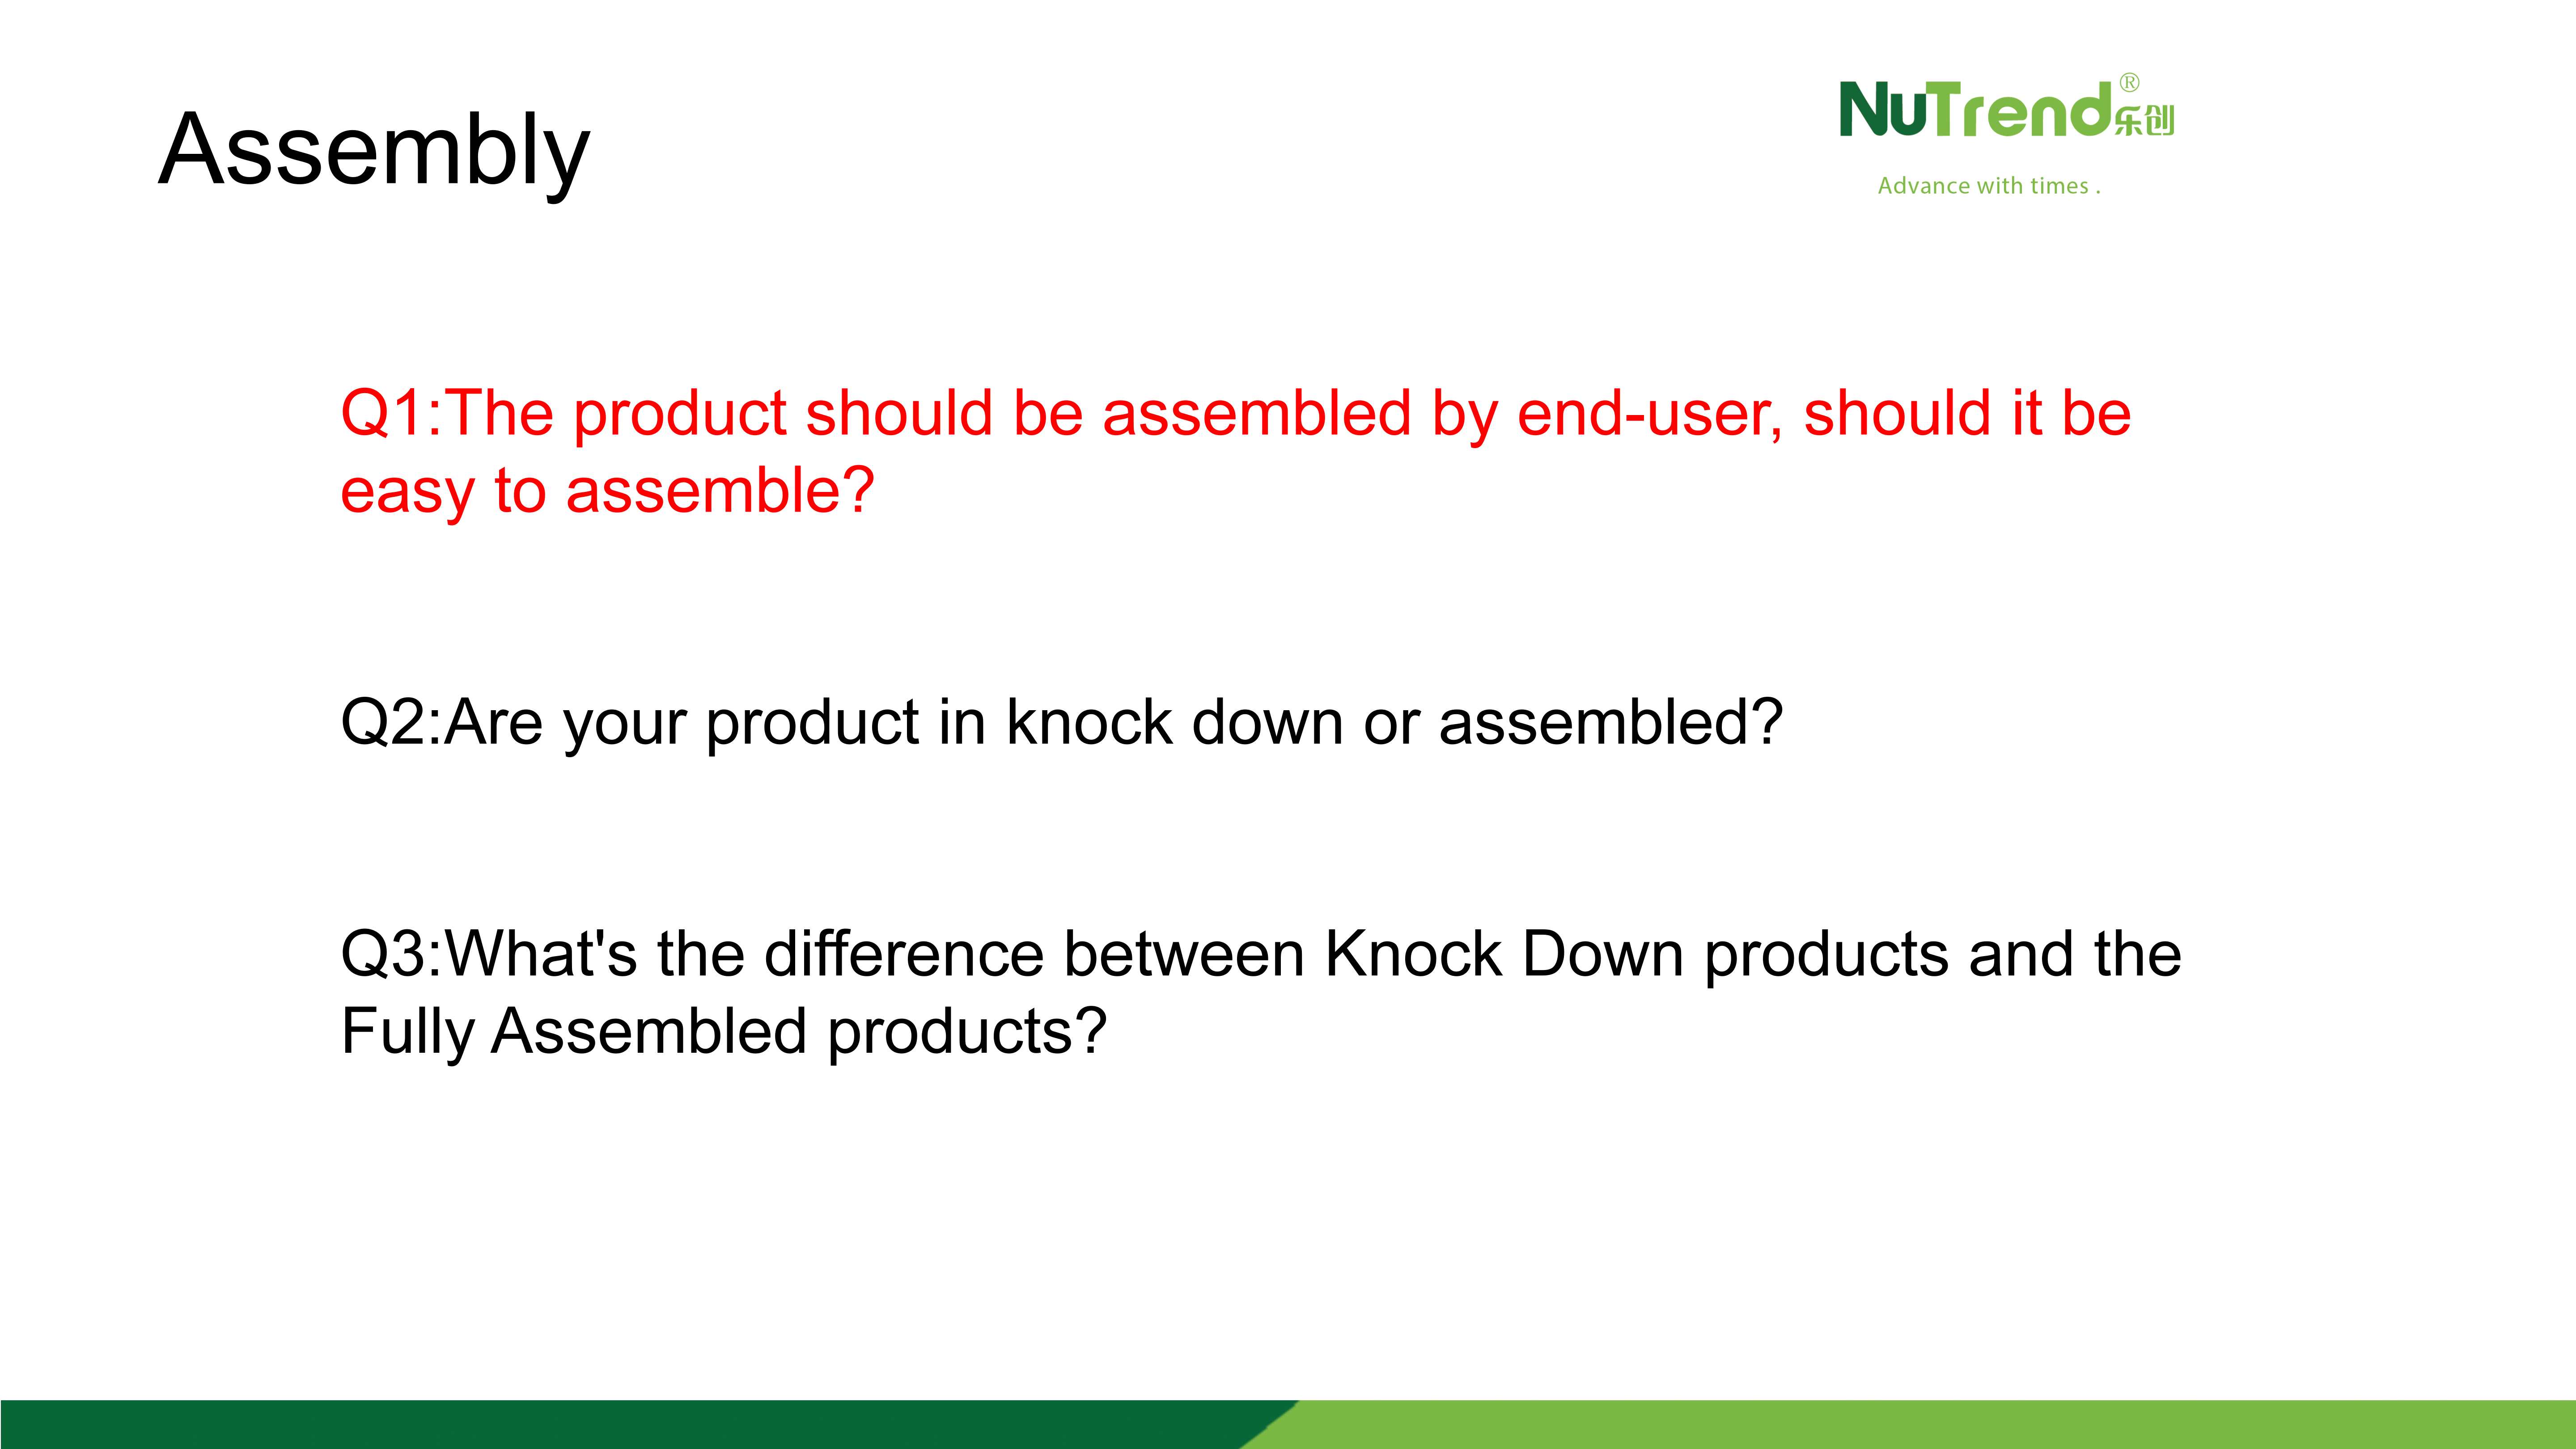 About Product Assembling